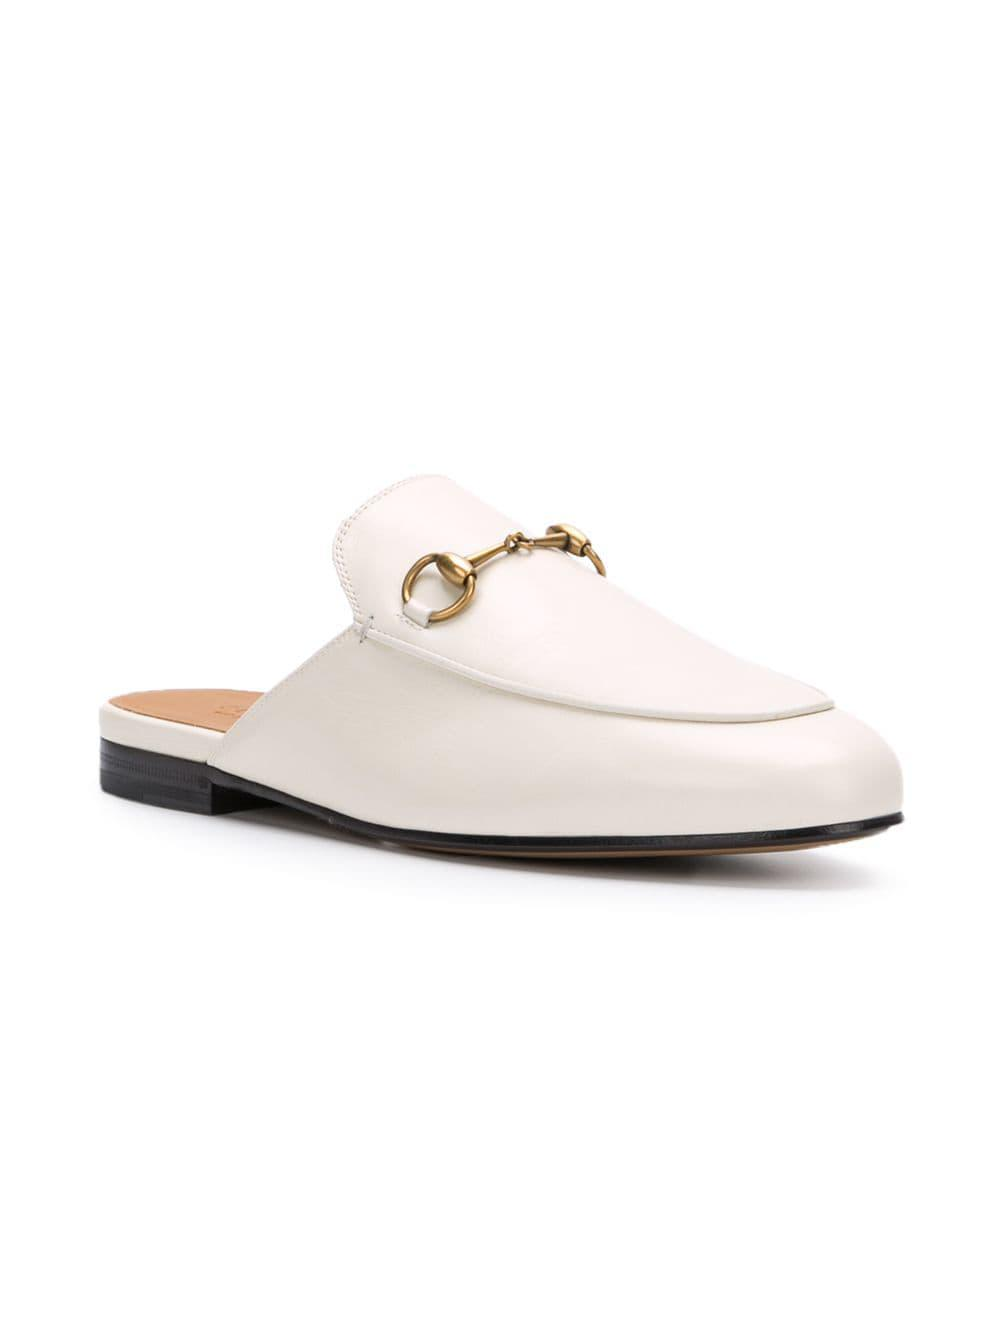 0c354b9a970 Lyst - Gucci Princetown Mules in White